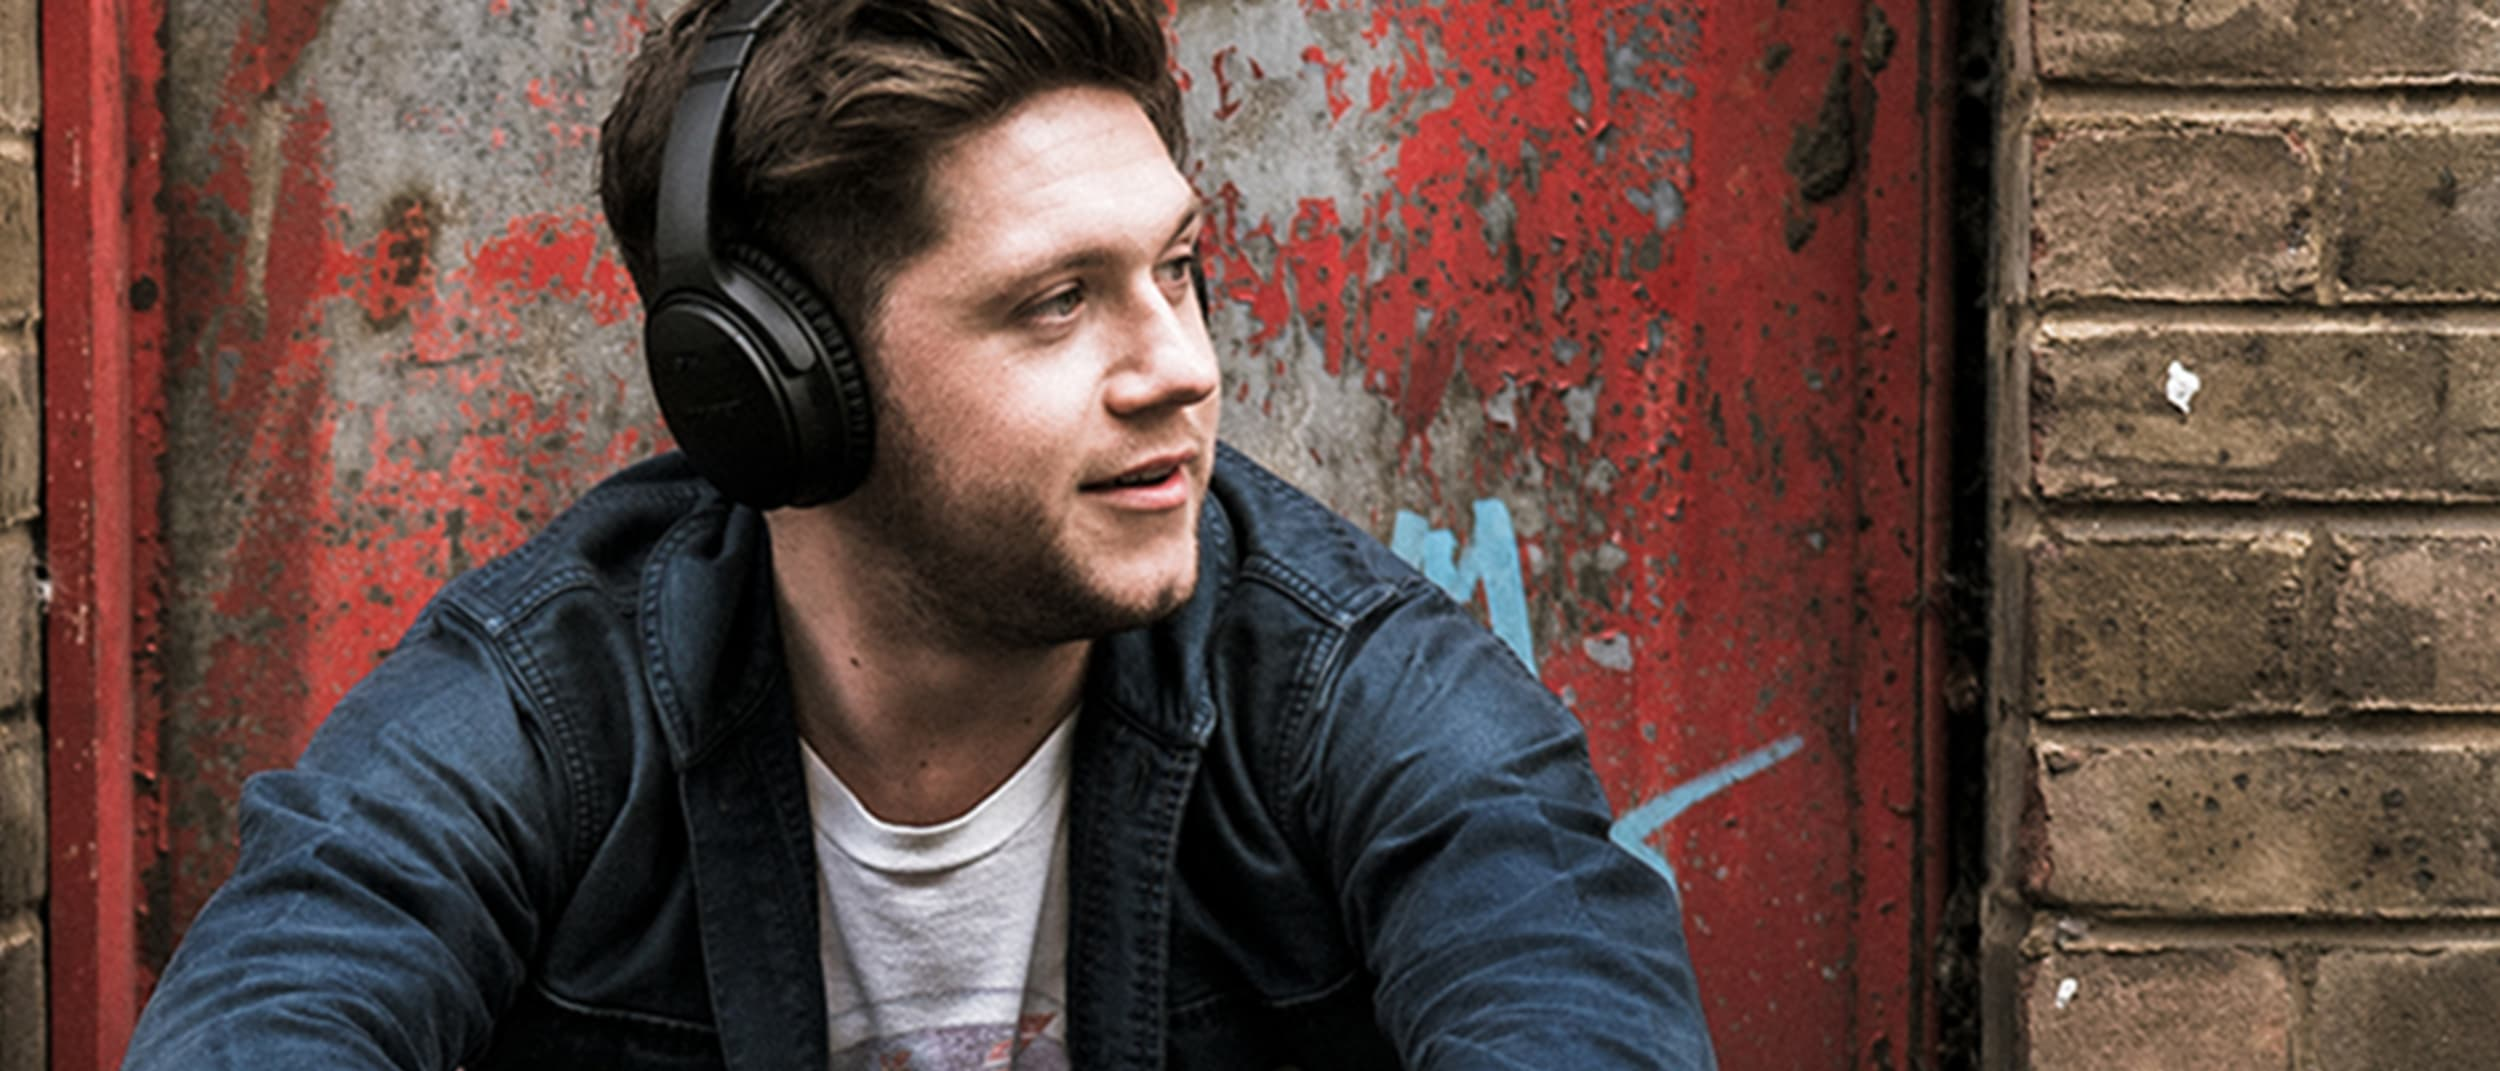 Win a meet and greet to Niall Horan's show and SoundSport Free